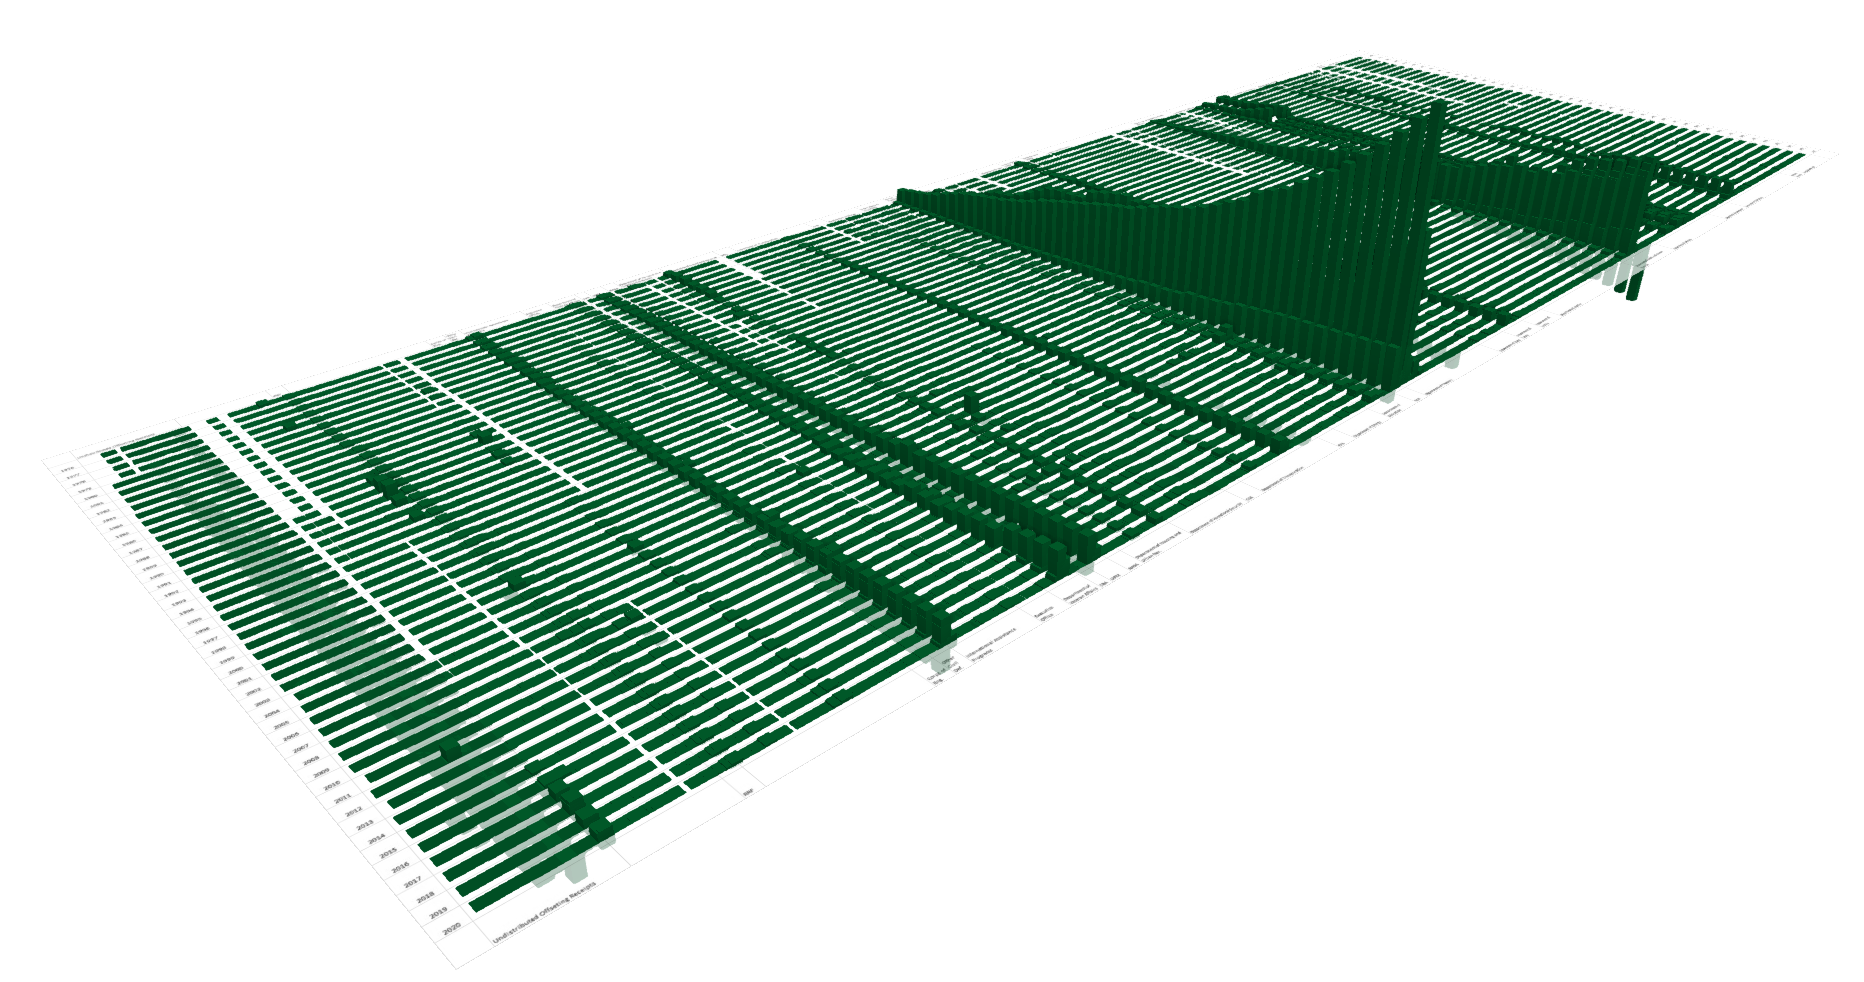 White House 2016 budget in 3D using Power Map for Excel